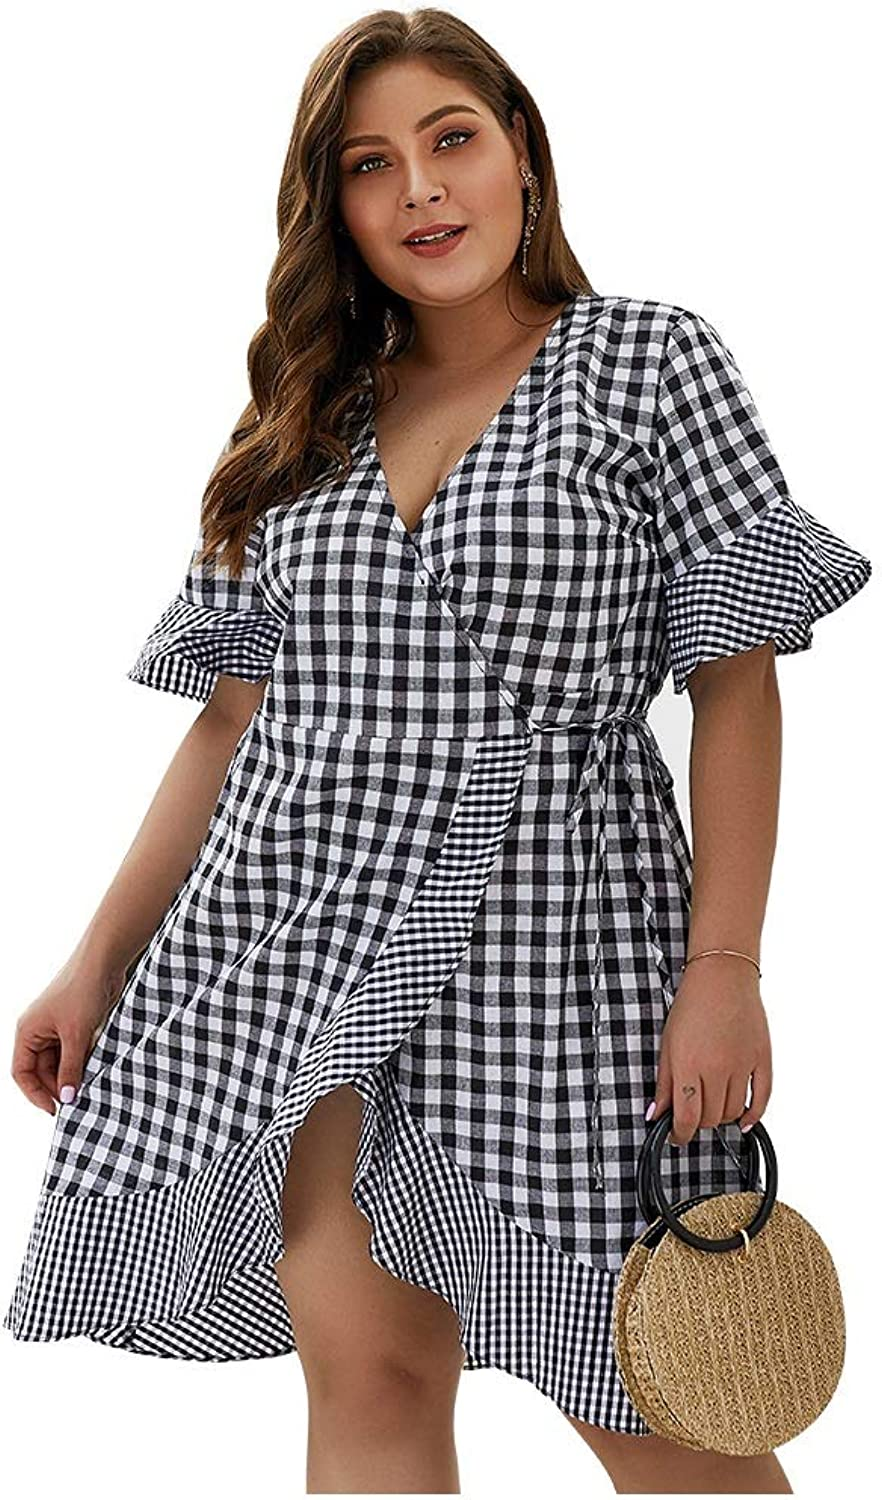 CARRY Dress, European and American Summer Big Swing Cocktail Comfortable Soft Women's VNeck Plaid FivePoint Sleeve Ruffled Dress (Size   4XL)